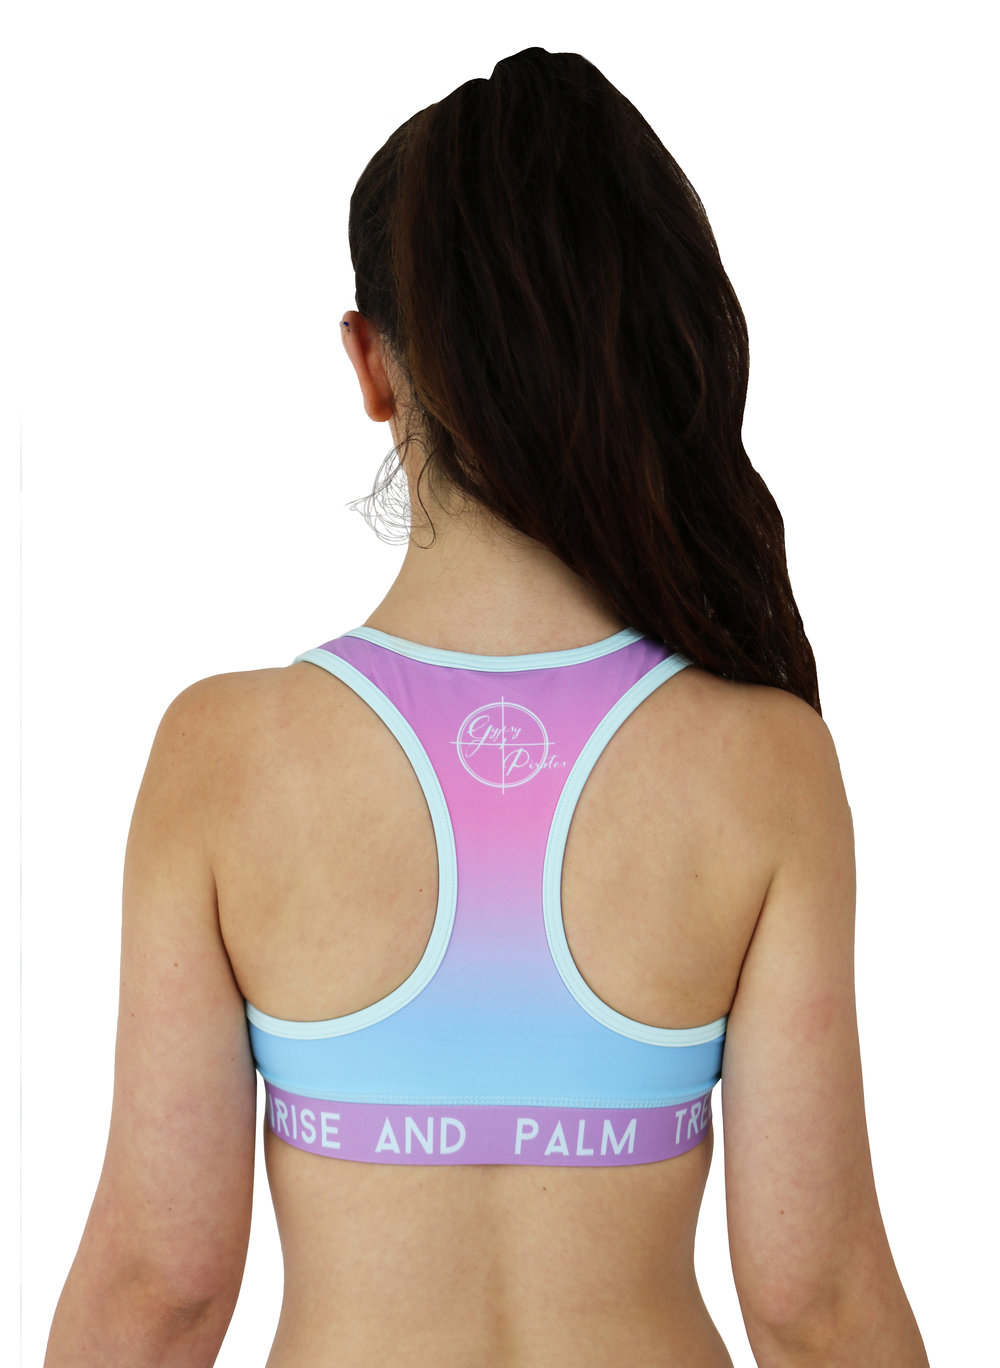 GP SUNRISE AND PALM TREES SPORTS BRA BACK.jpg